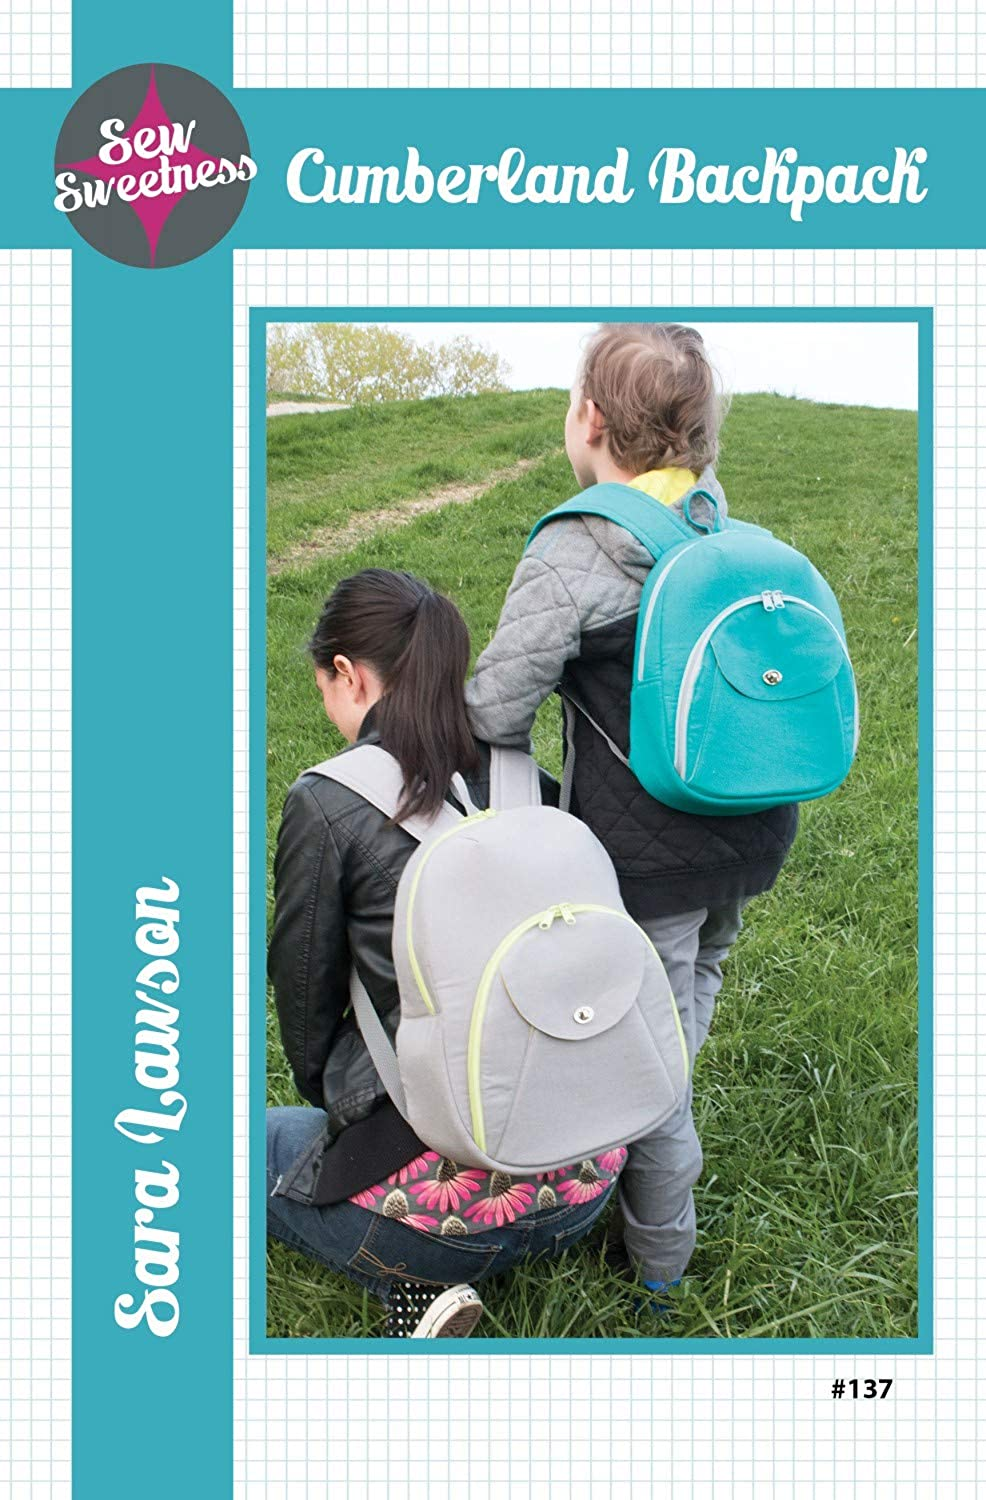 Cumberland Backpack 2 Sizes by Sew Sweetness